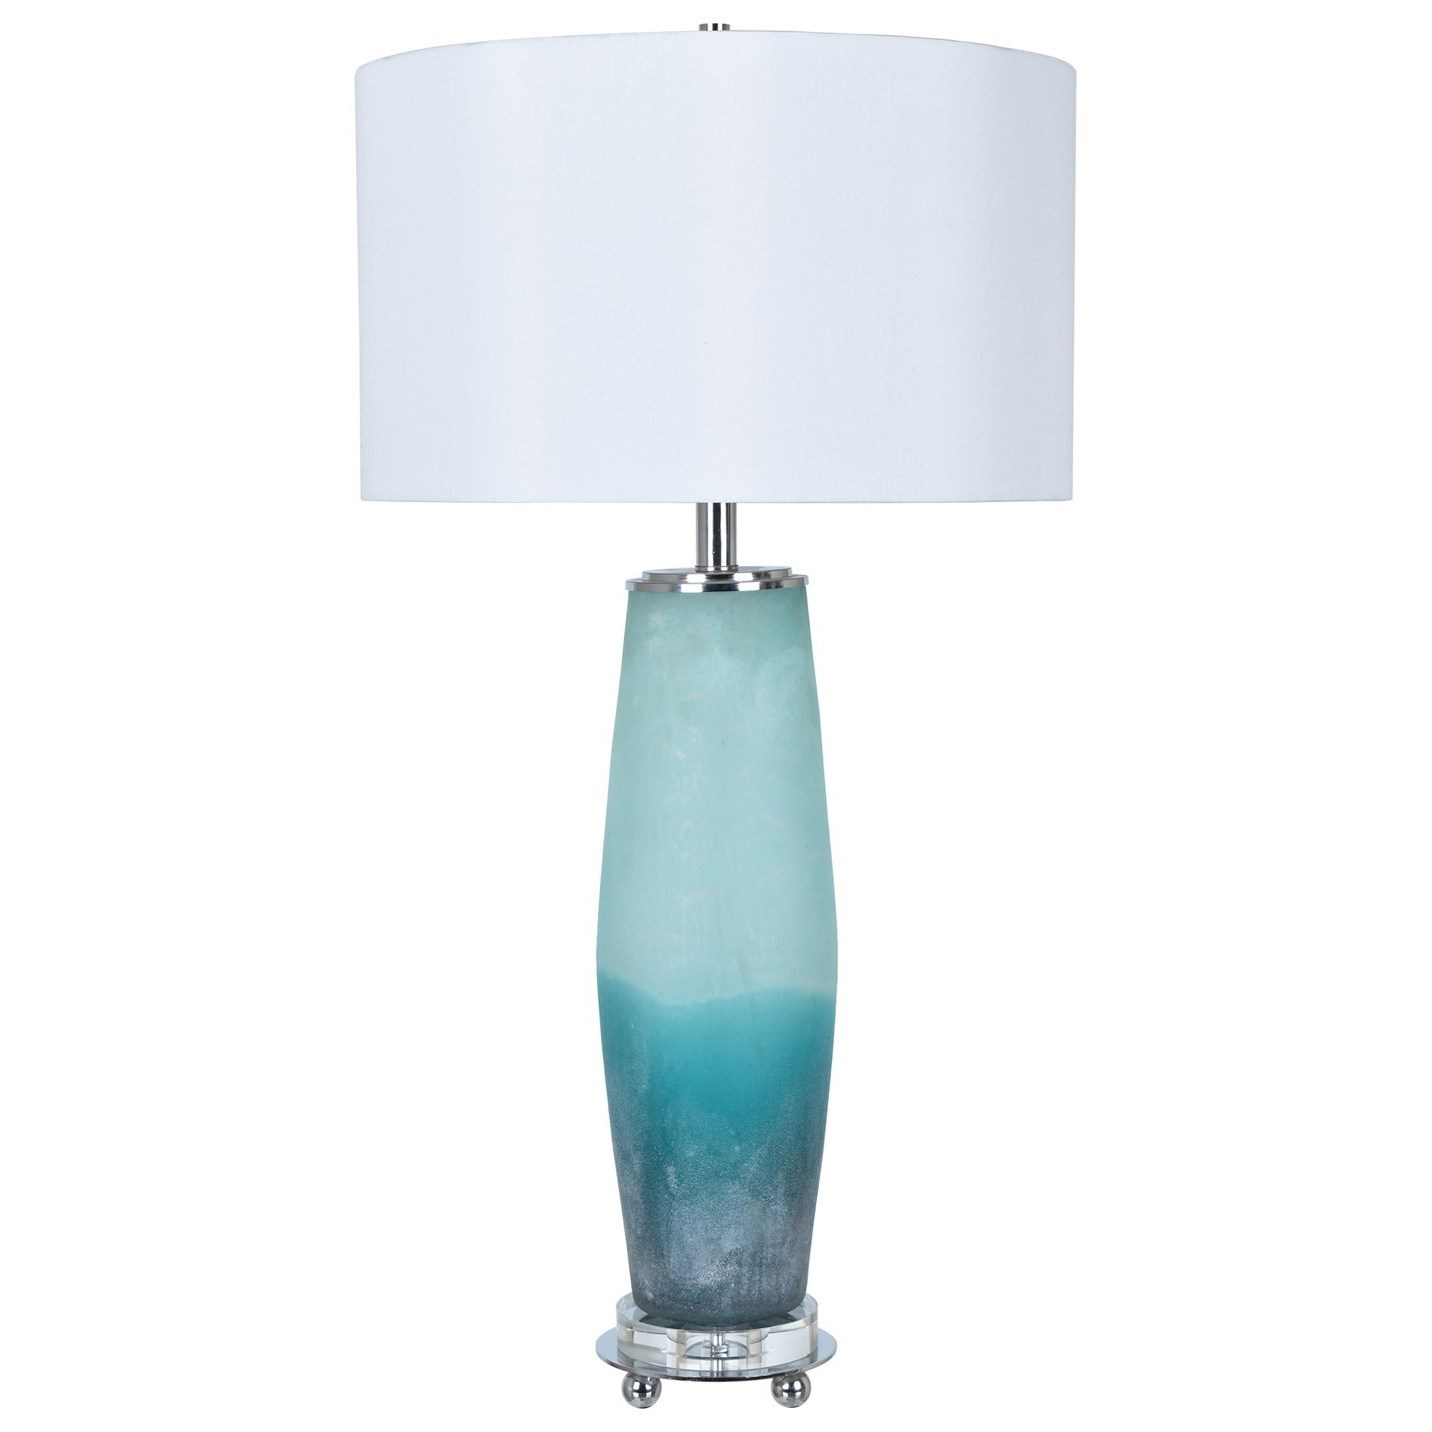 Lighting Seaside Table Lamp by Crestview Collection at Suburban Furniture